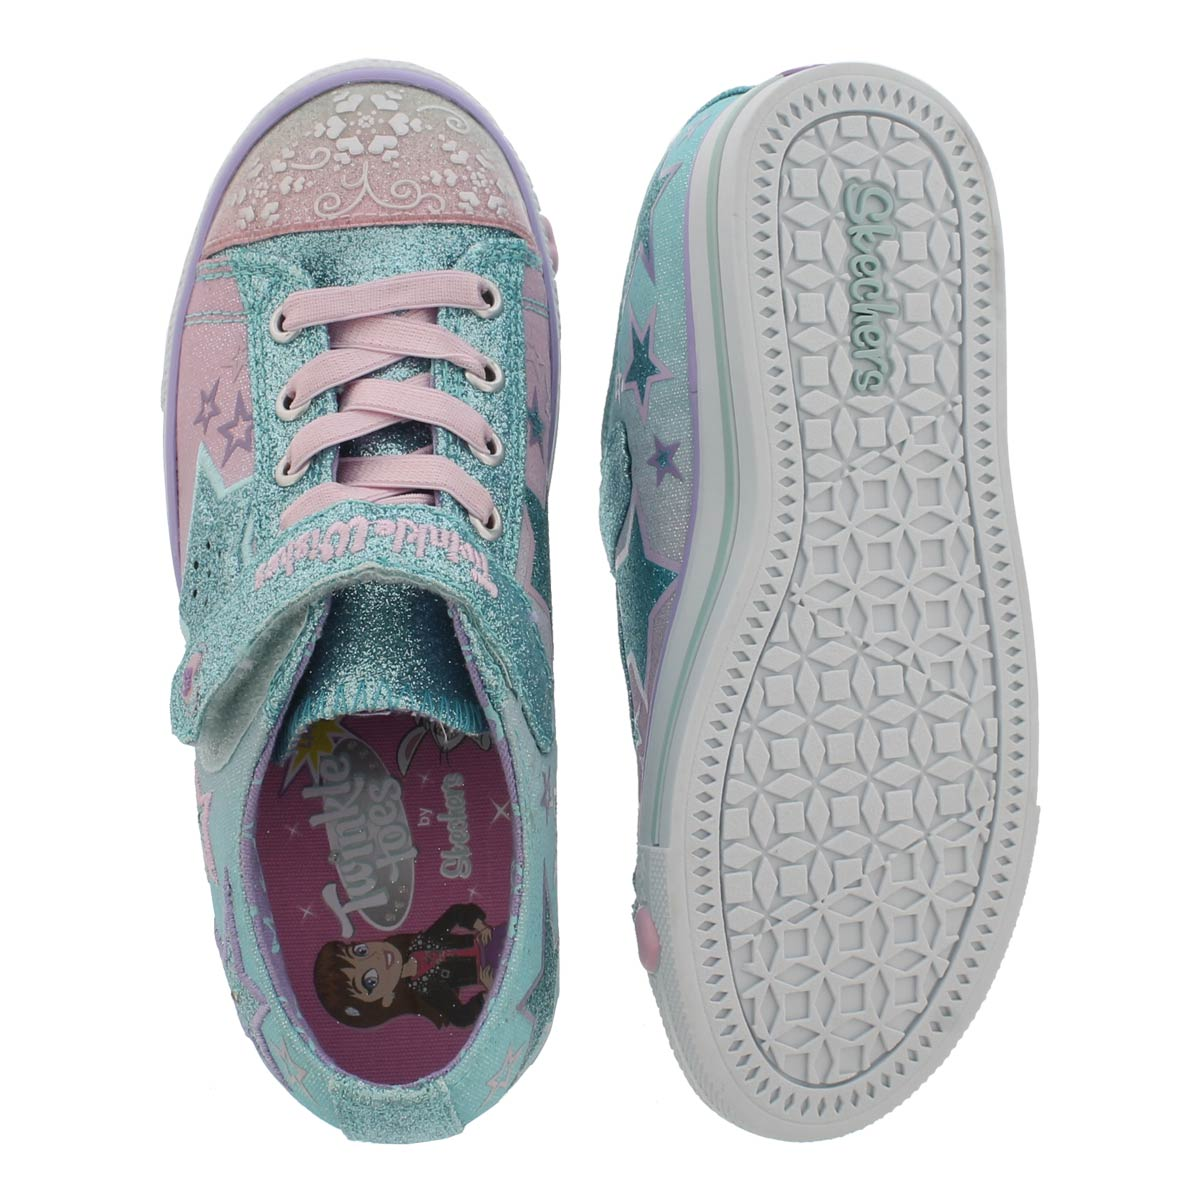 Grls Enchanter multi light up sneaker